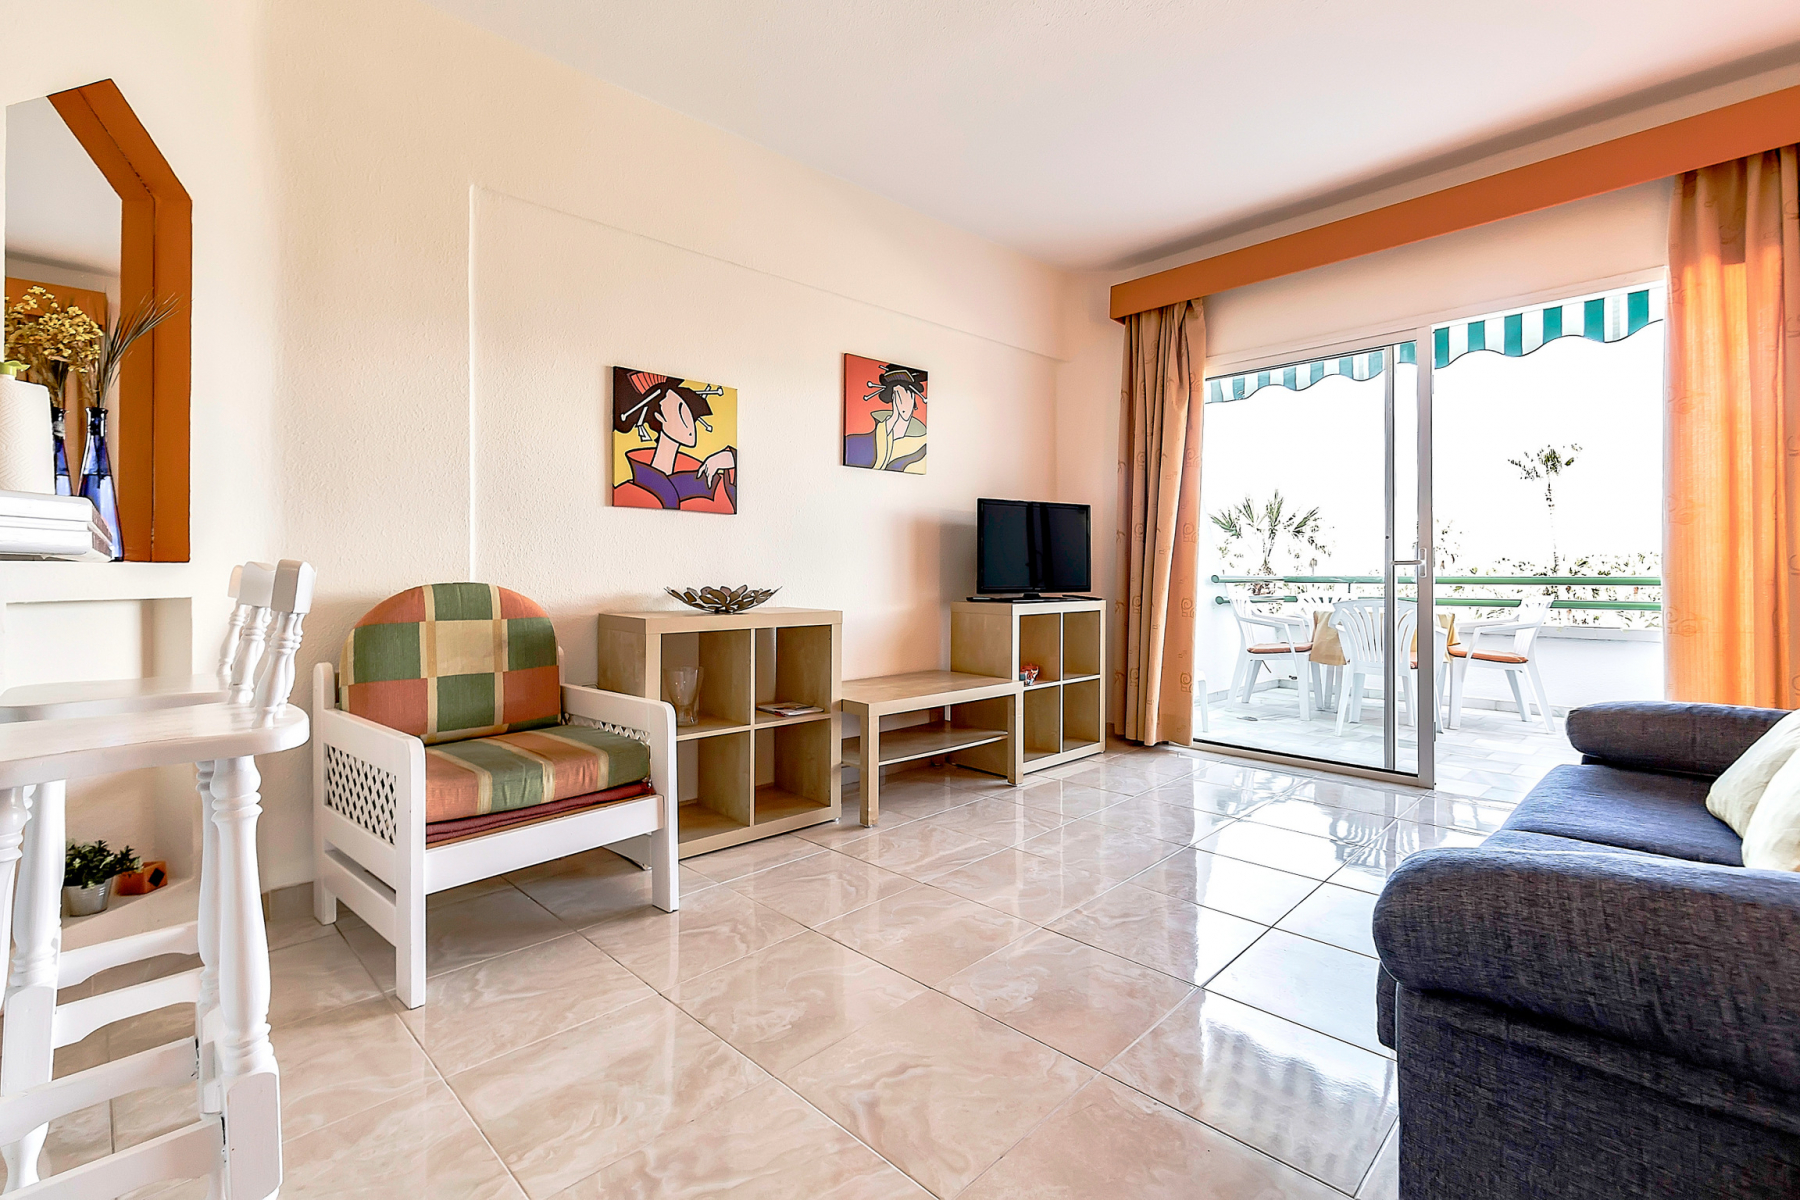 Properties for Sale in Tenerife, Canary Islands, Spain | SylkWayStar Real Estate. Lovely 1 Bedroom Apartment - Altamira. Image-25824